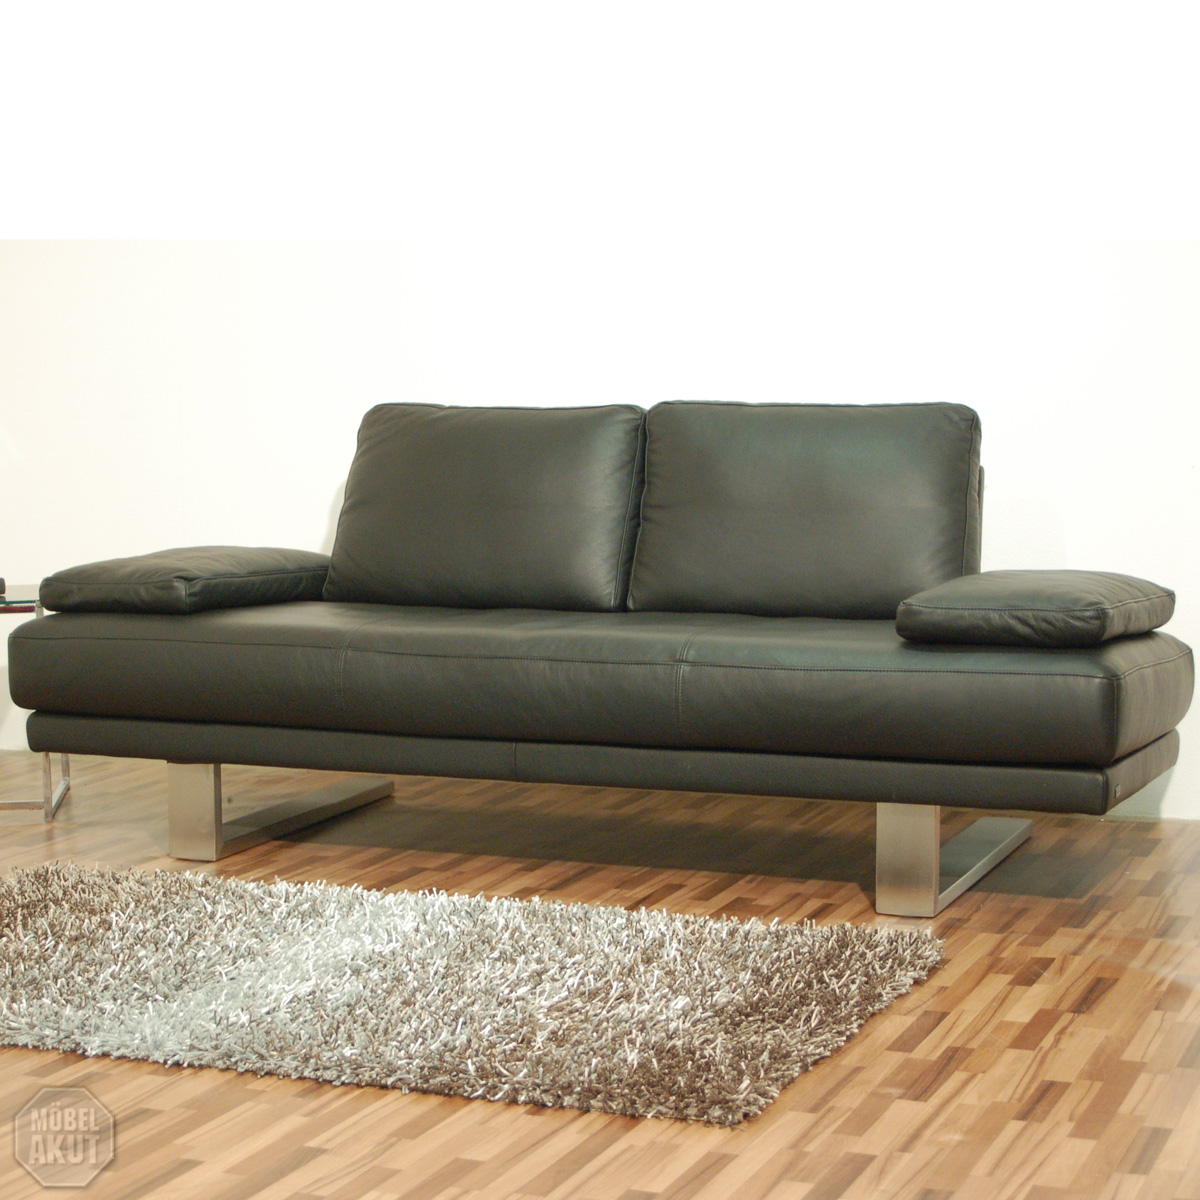 Rolf Benz Sofa 6600 Original Quotrolf Benz Quot Freischwinger Sofa Quotsob 6600 Quot In